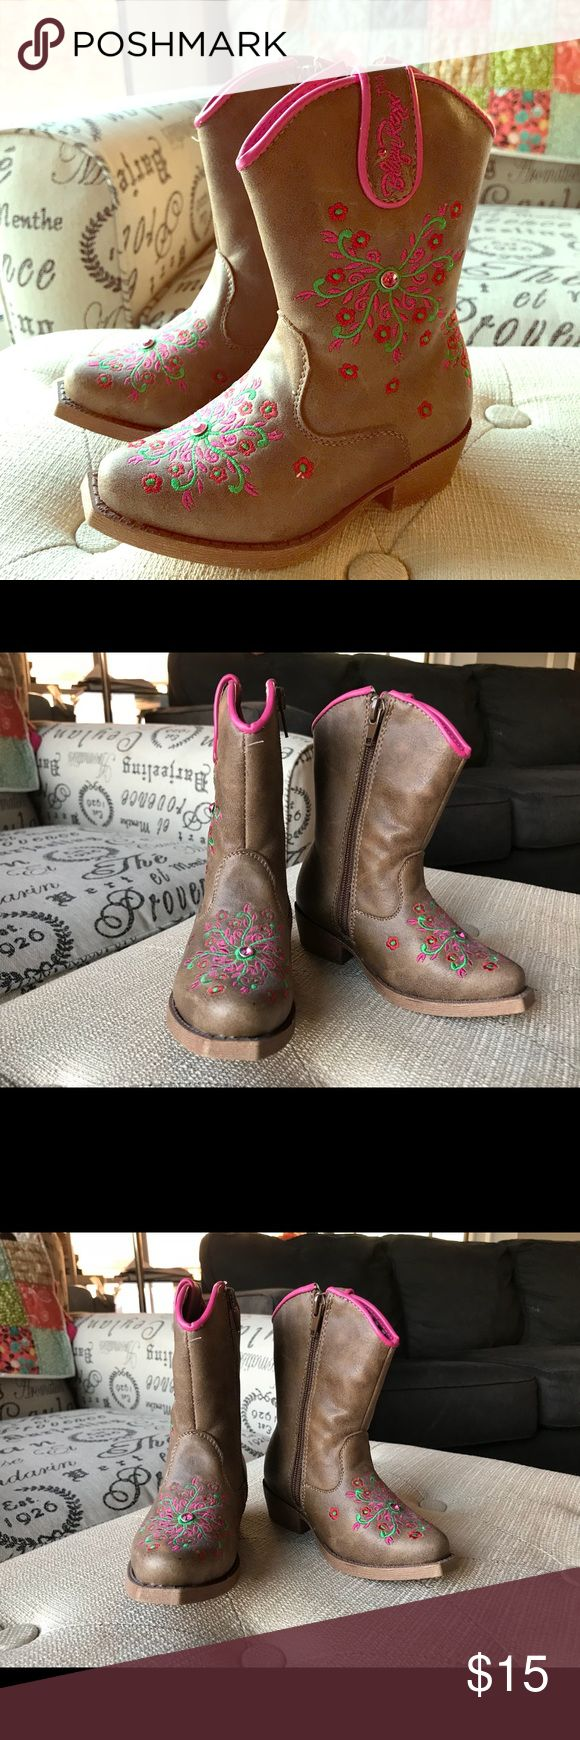 Toddler girl cowboy boots brand new Never worn new in perfect condition Shoes Boots